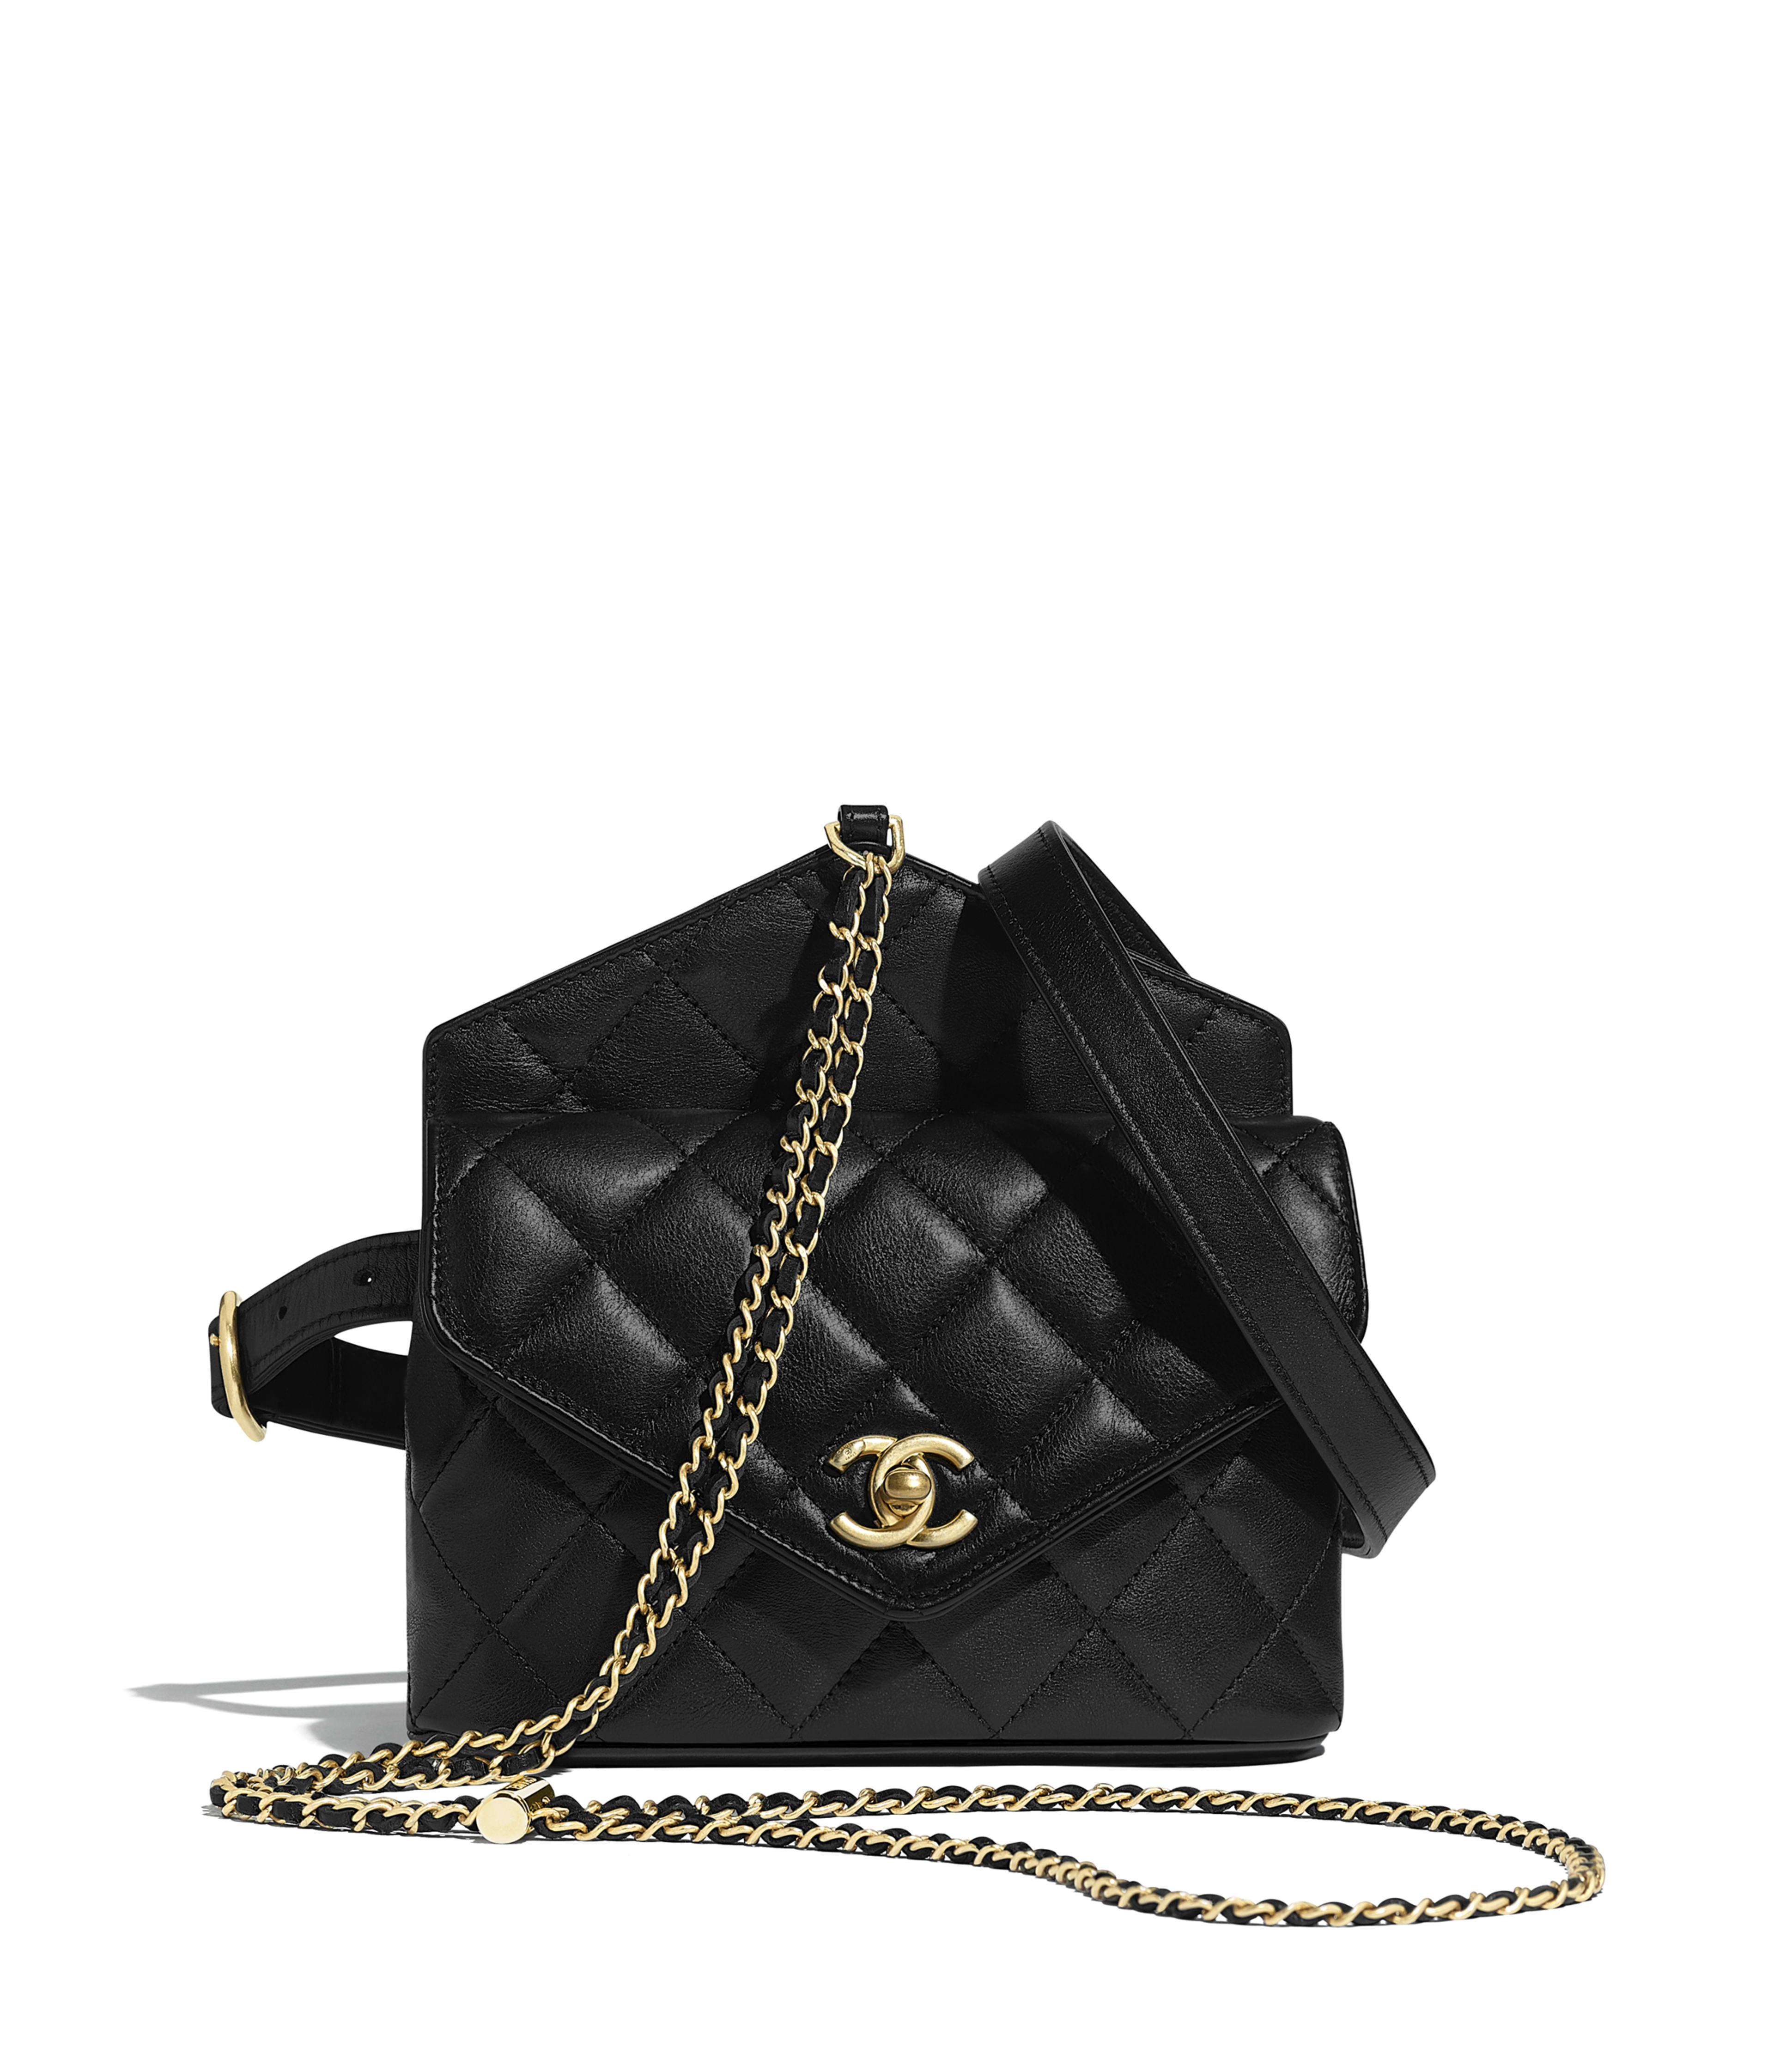 9dc76cfa19e0 Waist Bag Calfskin & Gold-Tone Metal, Black Ref. AS0657B0038294305